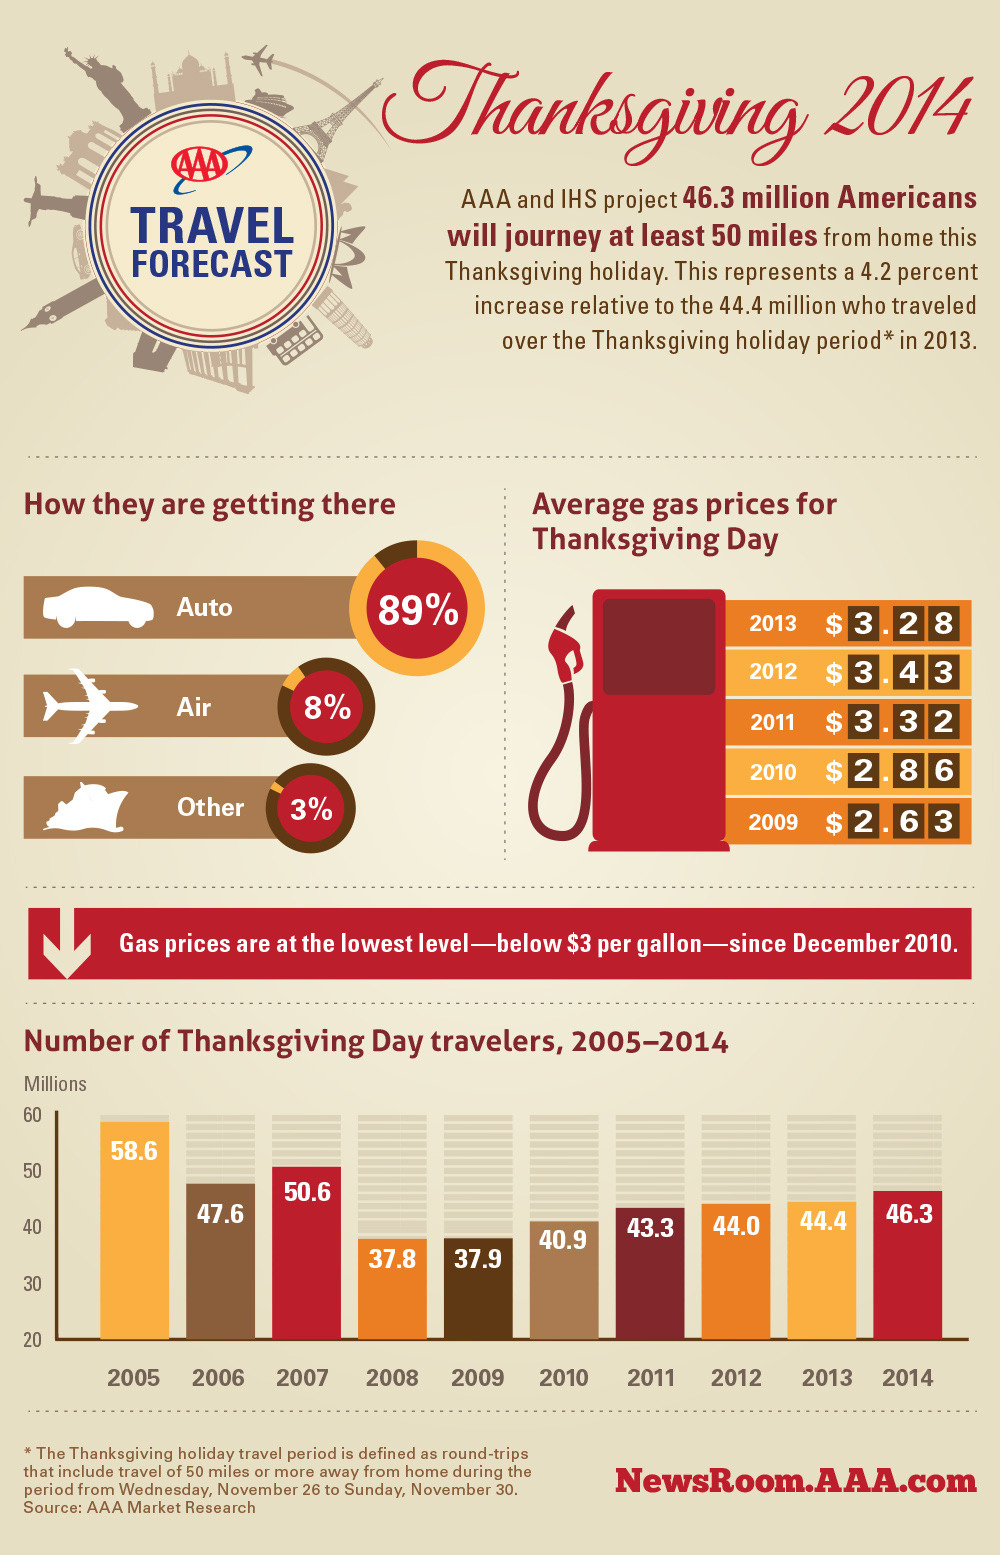 8eacdce1e84549a3398e_AAA_2014-Travel-Forecast-Thanksgiving.jpg